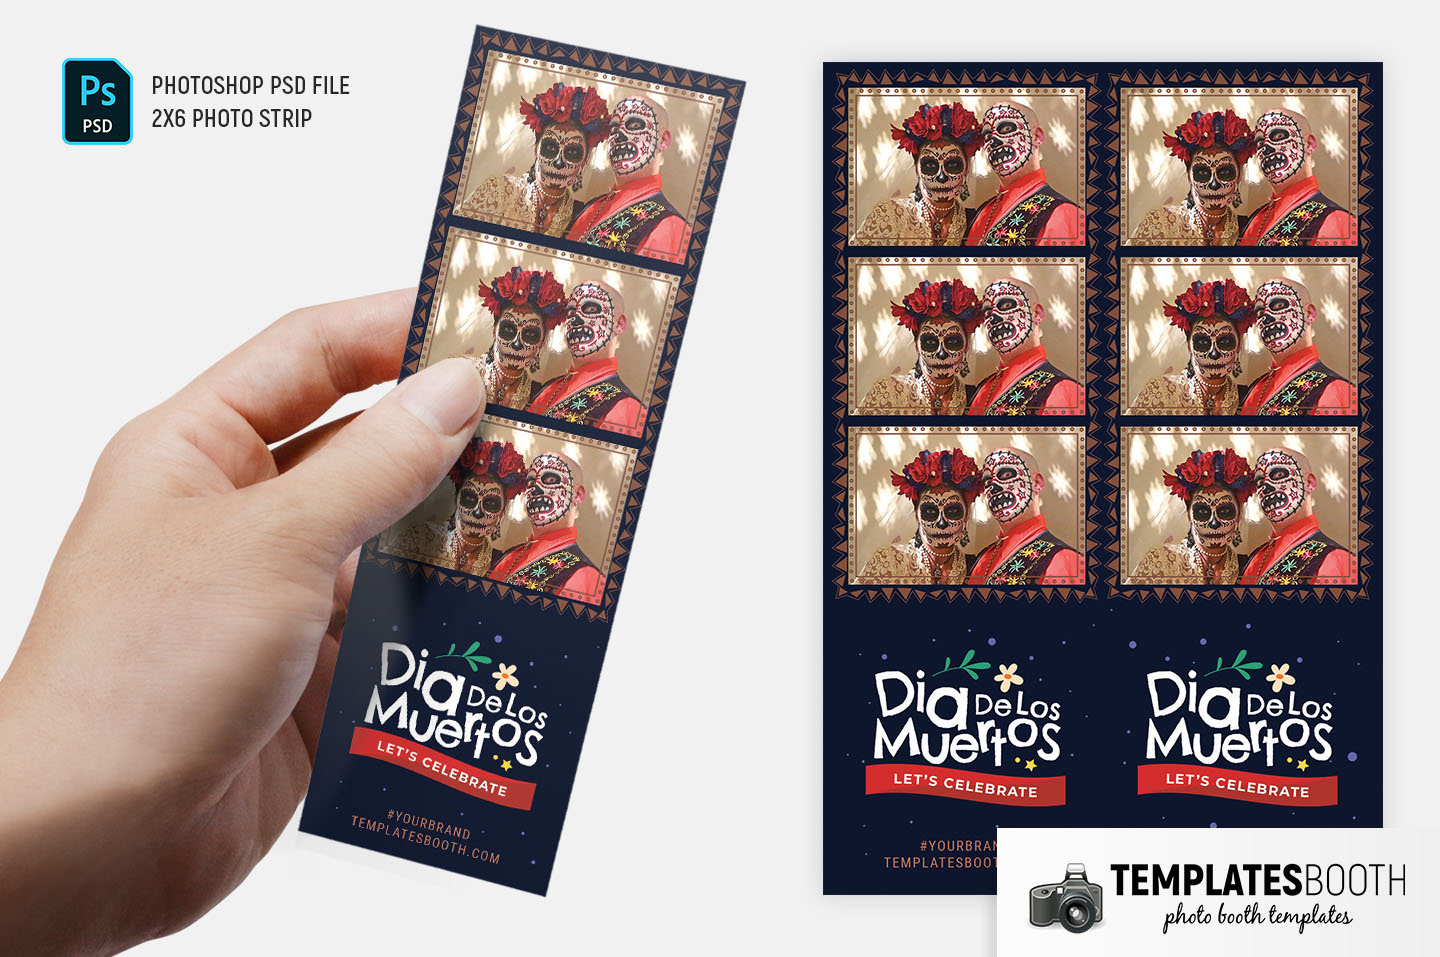 Day of The Dead Photo Booth Template (2x6 photo strip)